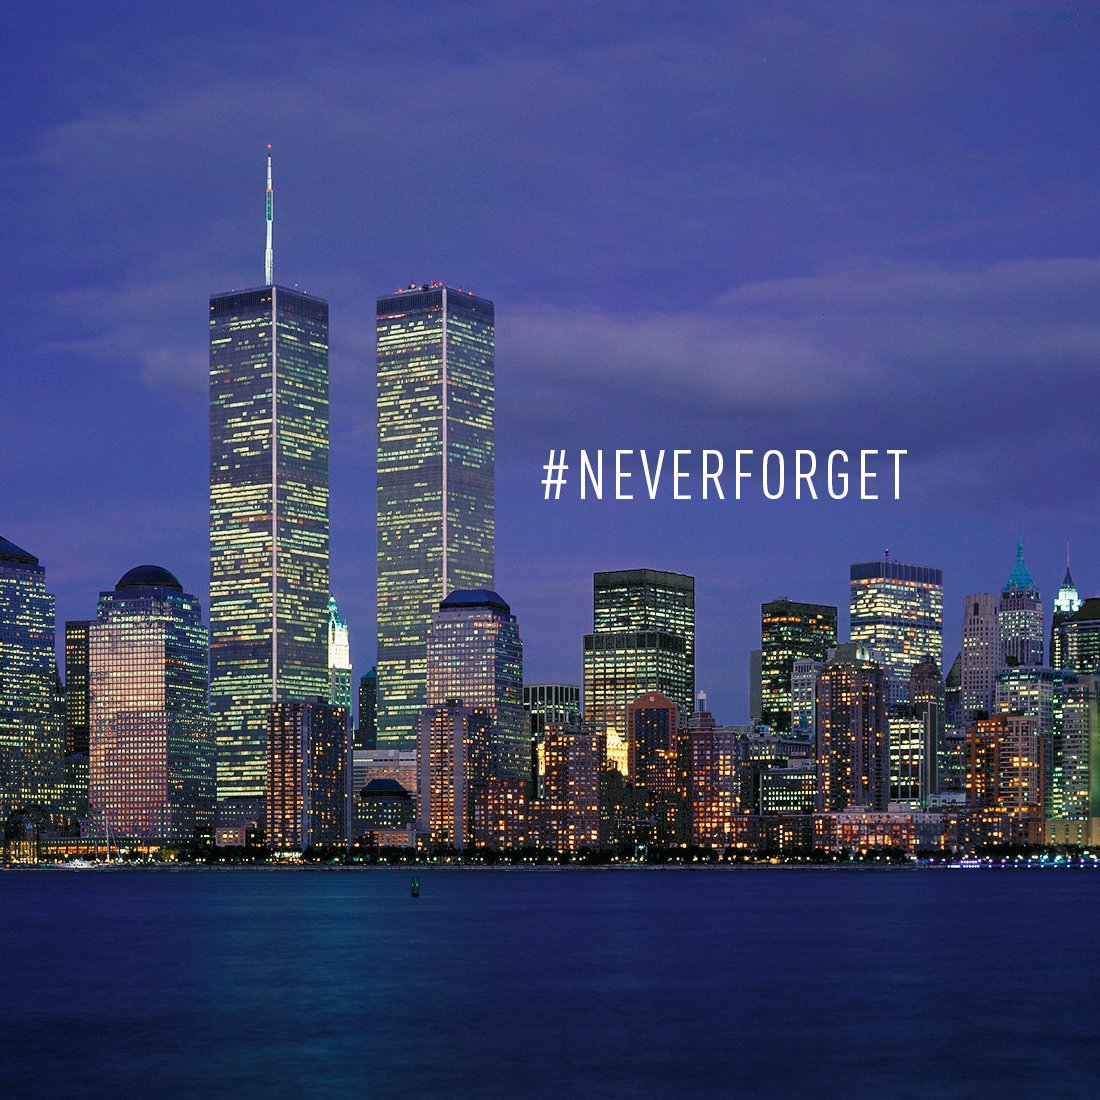 We join together in rememberance and prayer of the day that affected the lives of many #NeverForget https://t.co/iApbHpOjVy